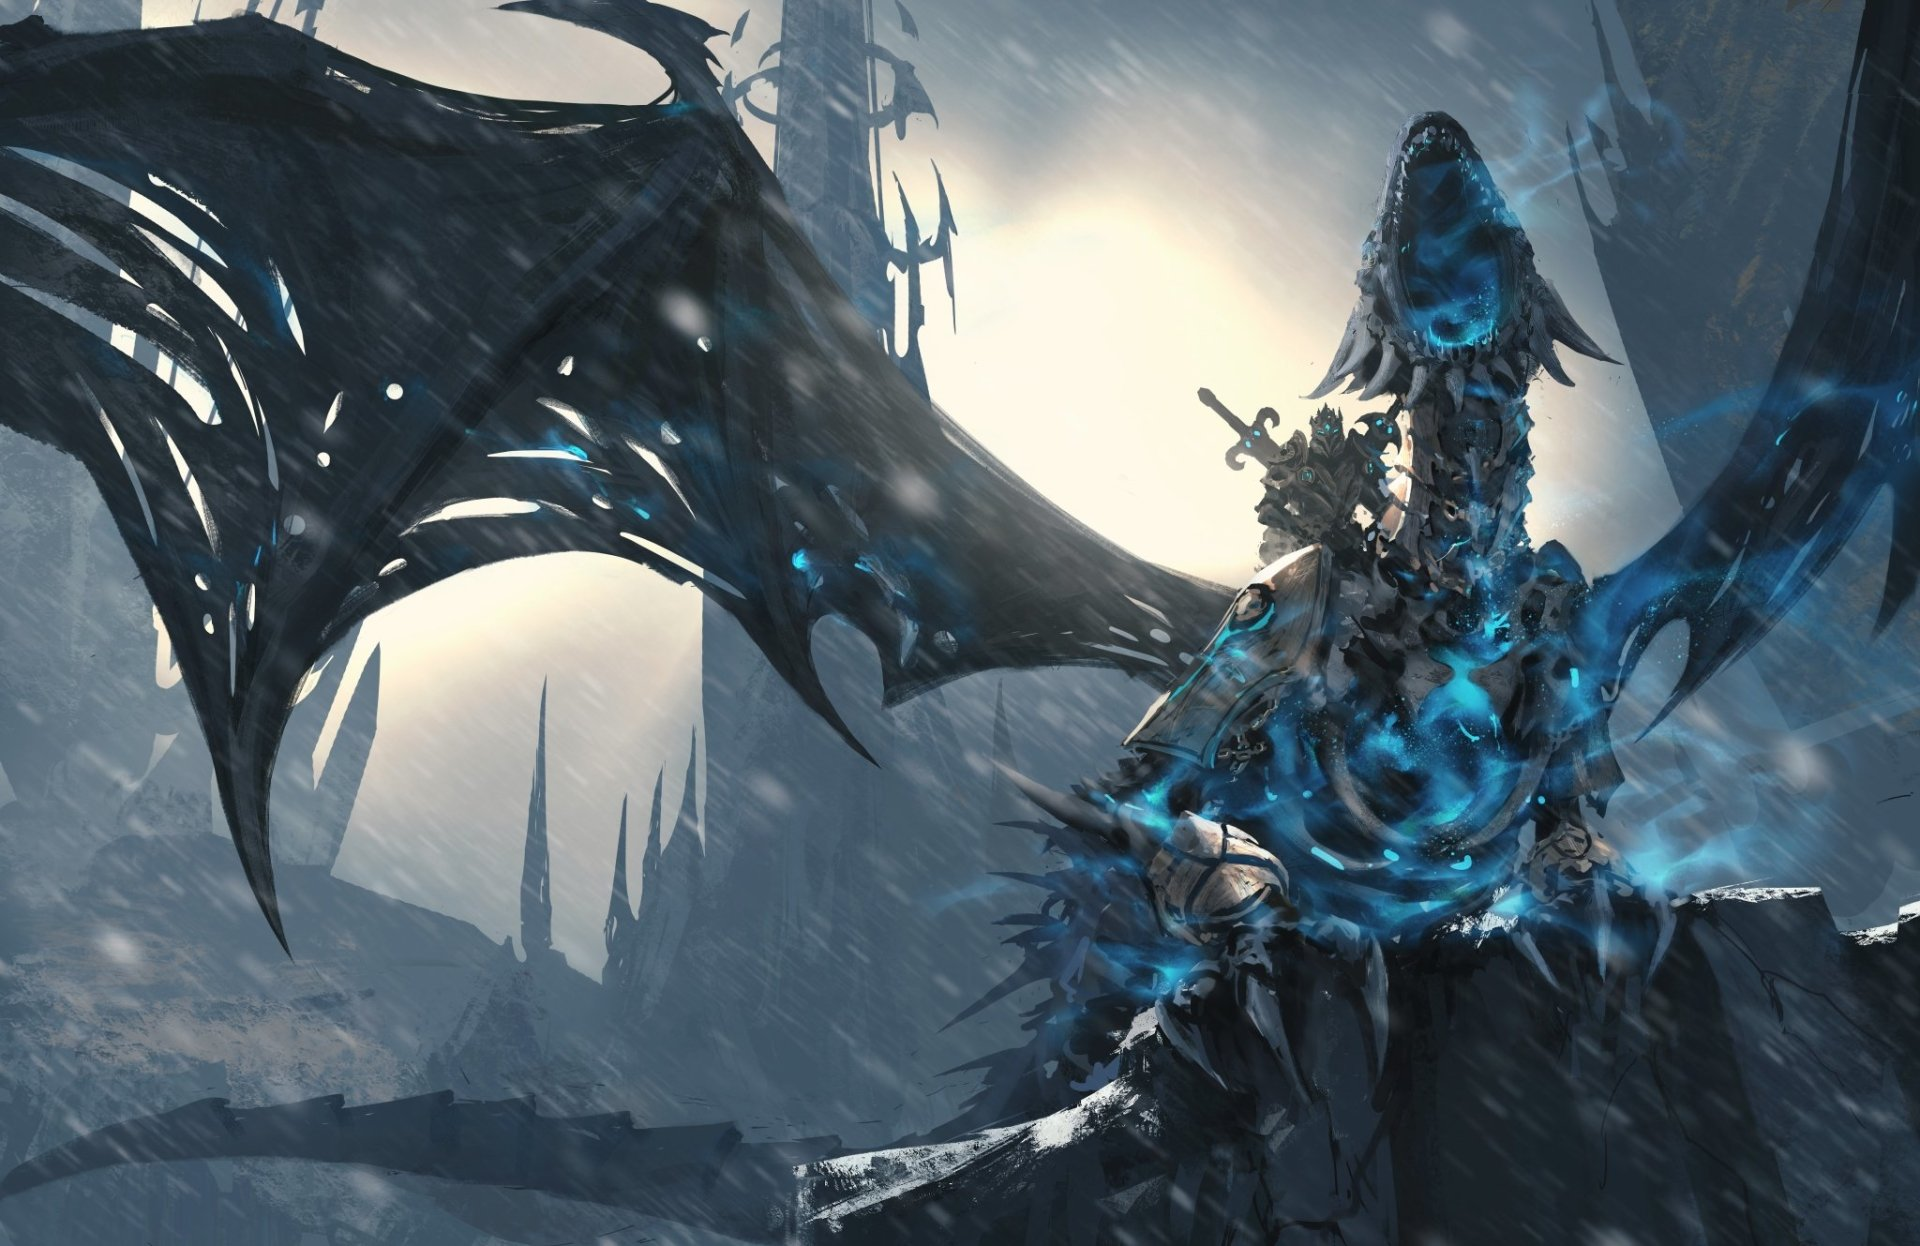 Video Game - World Of Warcraft: Wrath Of The Lich King  Lich King Dragon Warrior World of Warcraft Wallpaper